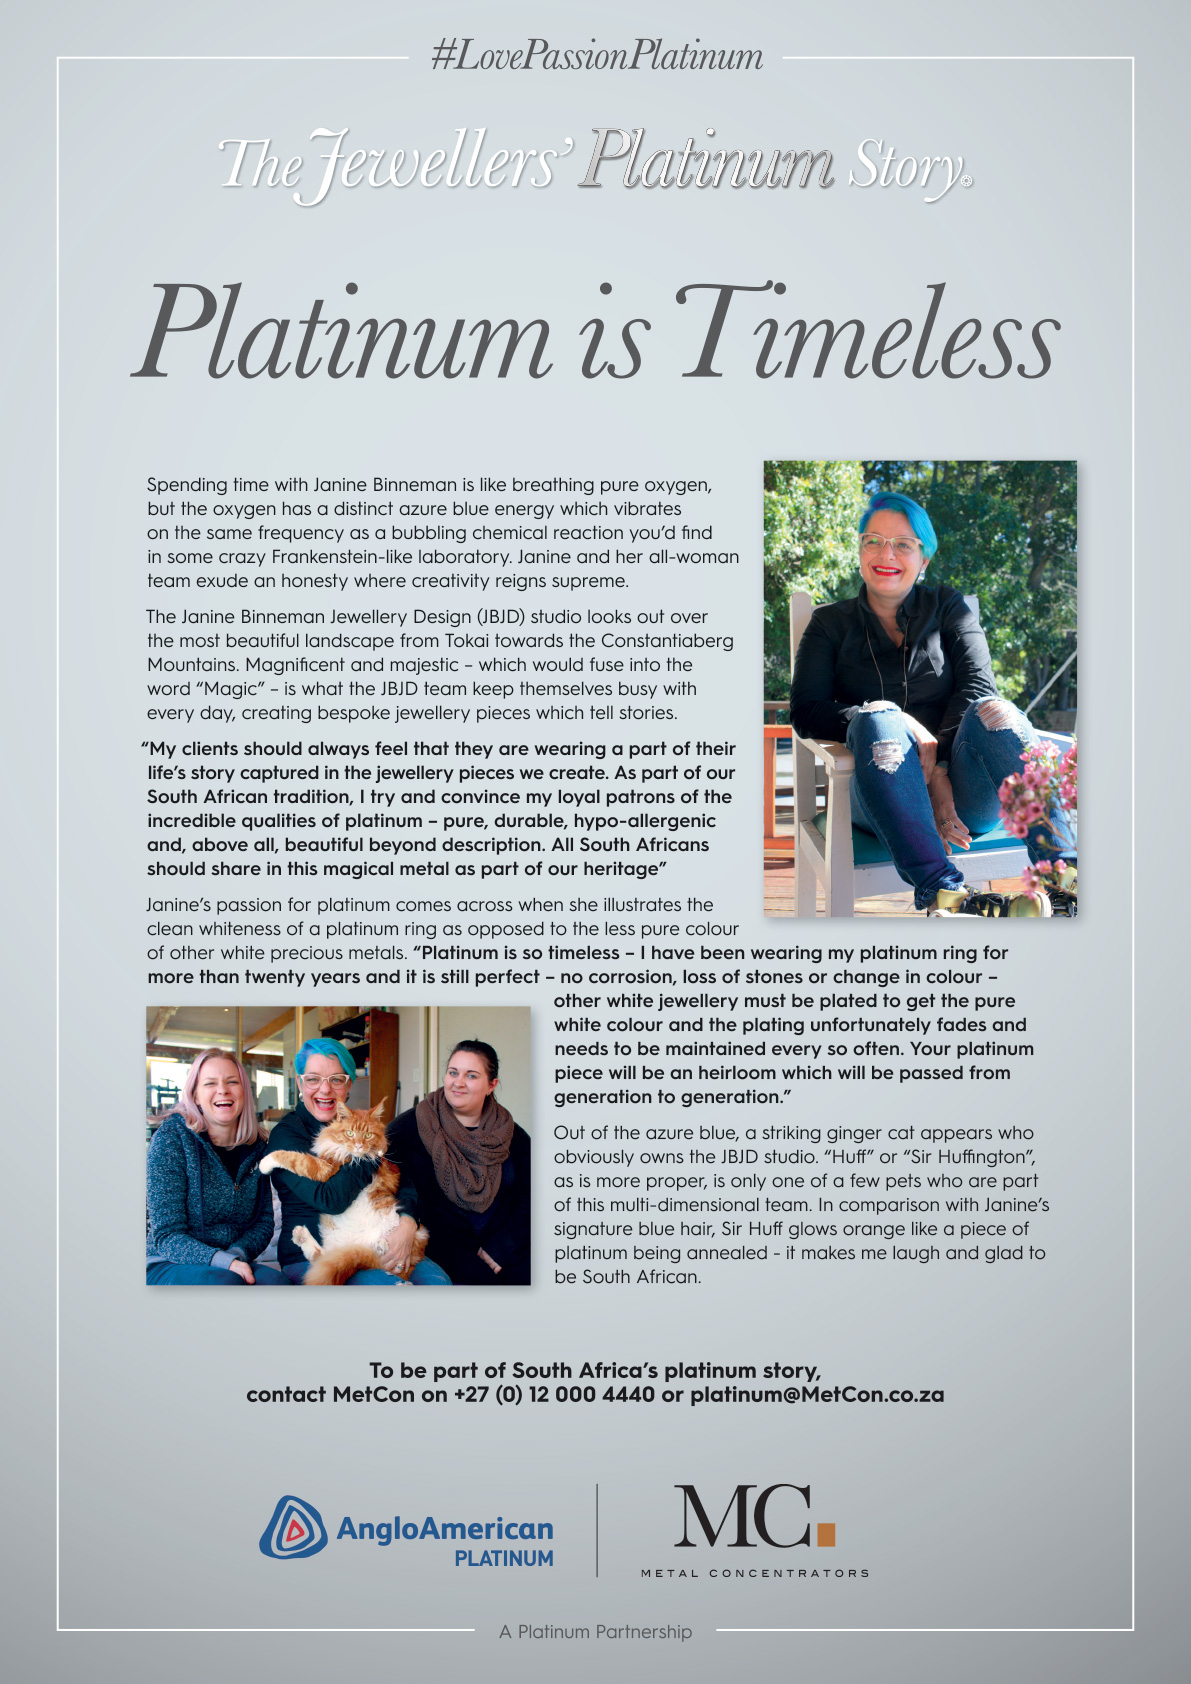 Platinum is Timeless